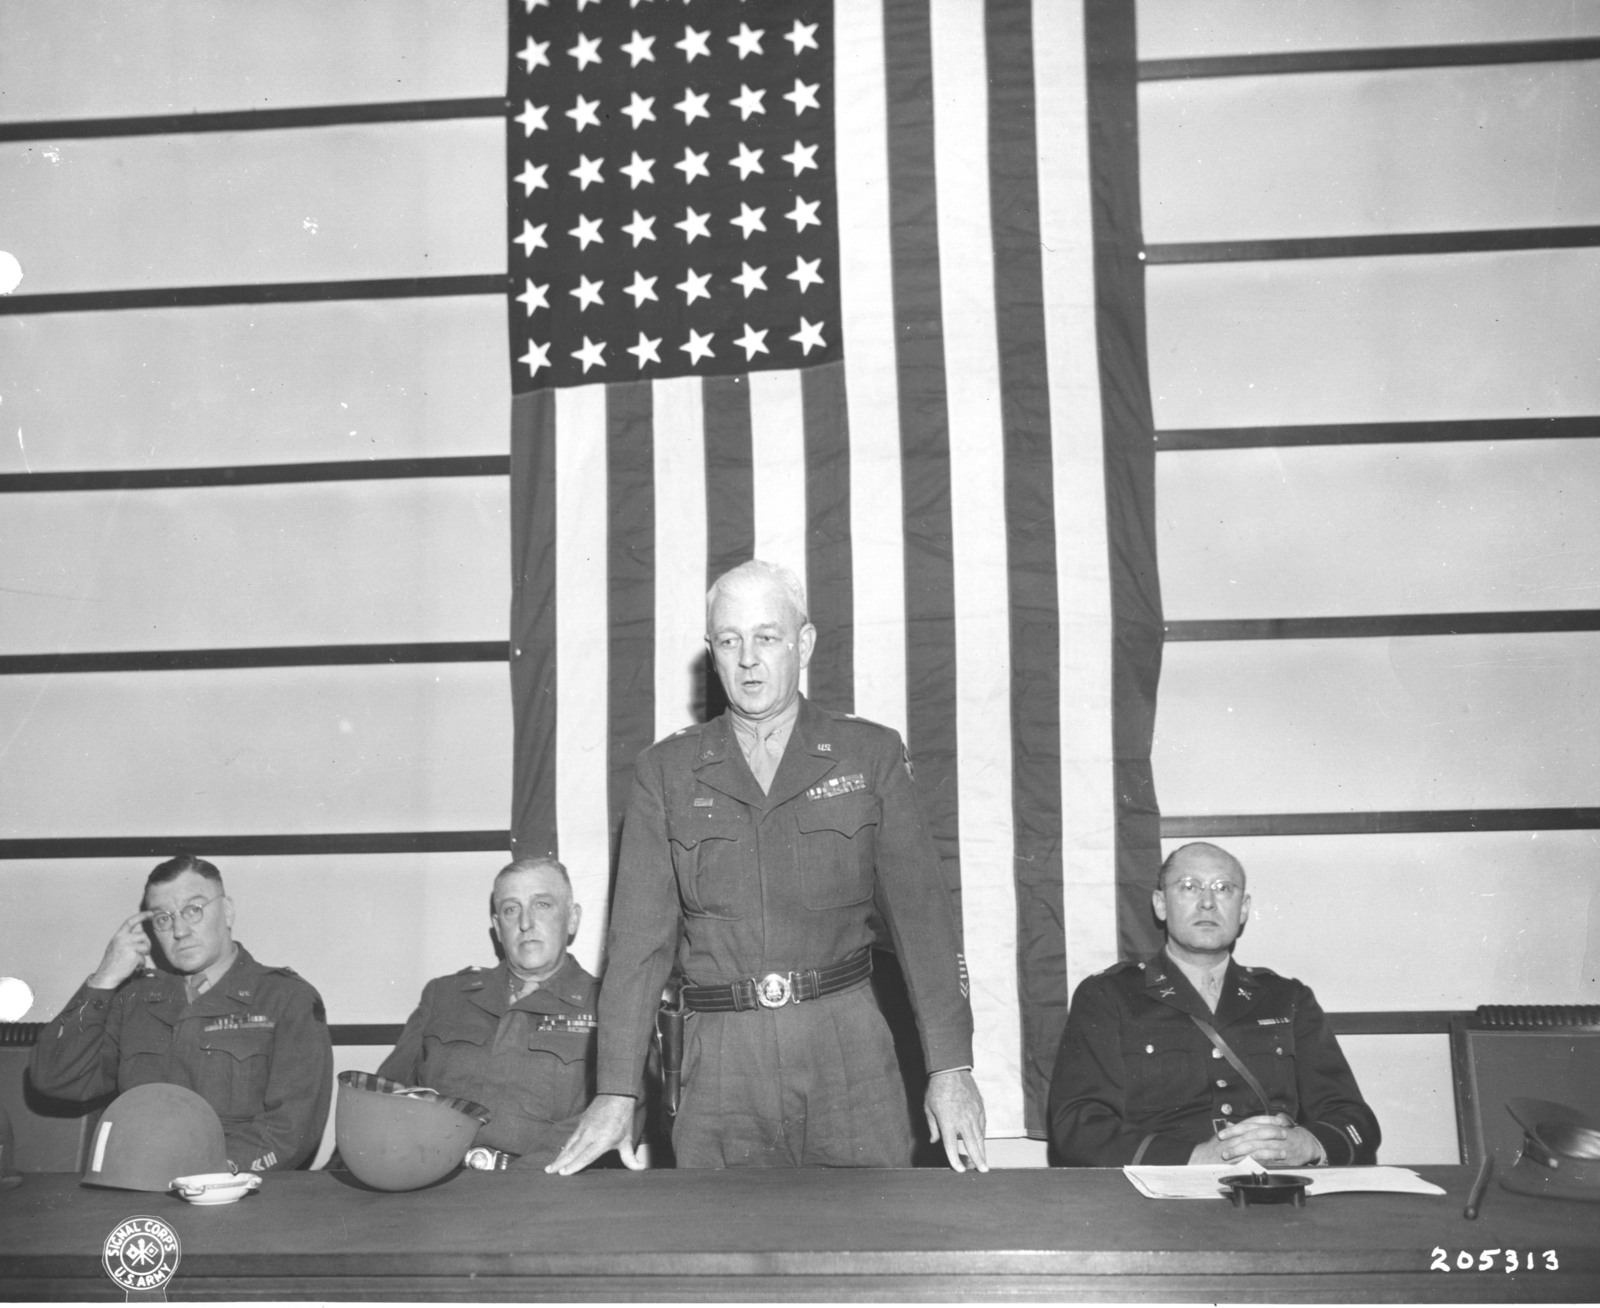 Photograph of Major General Hugh J. Gaffey Addressing Heads of Regional German Governments and Army Technical Staff